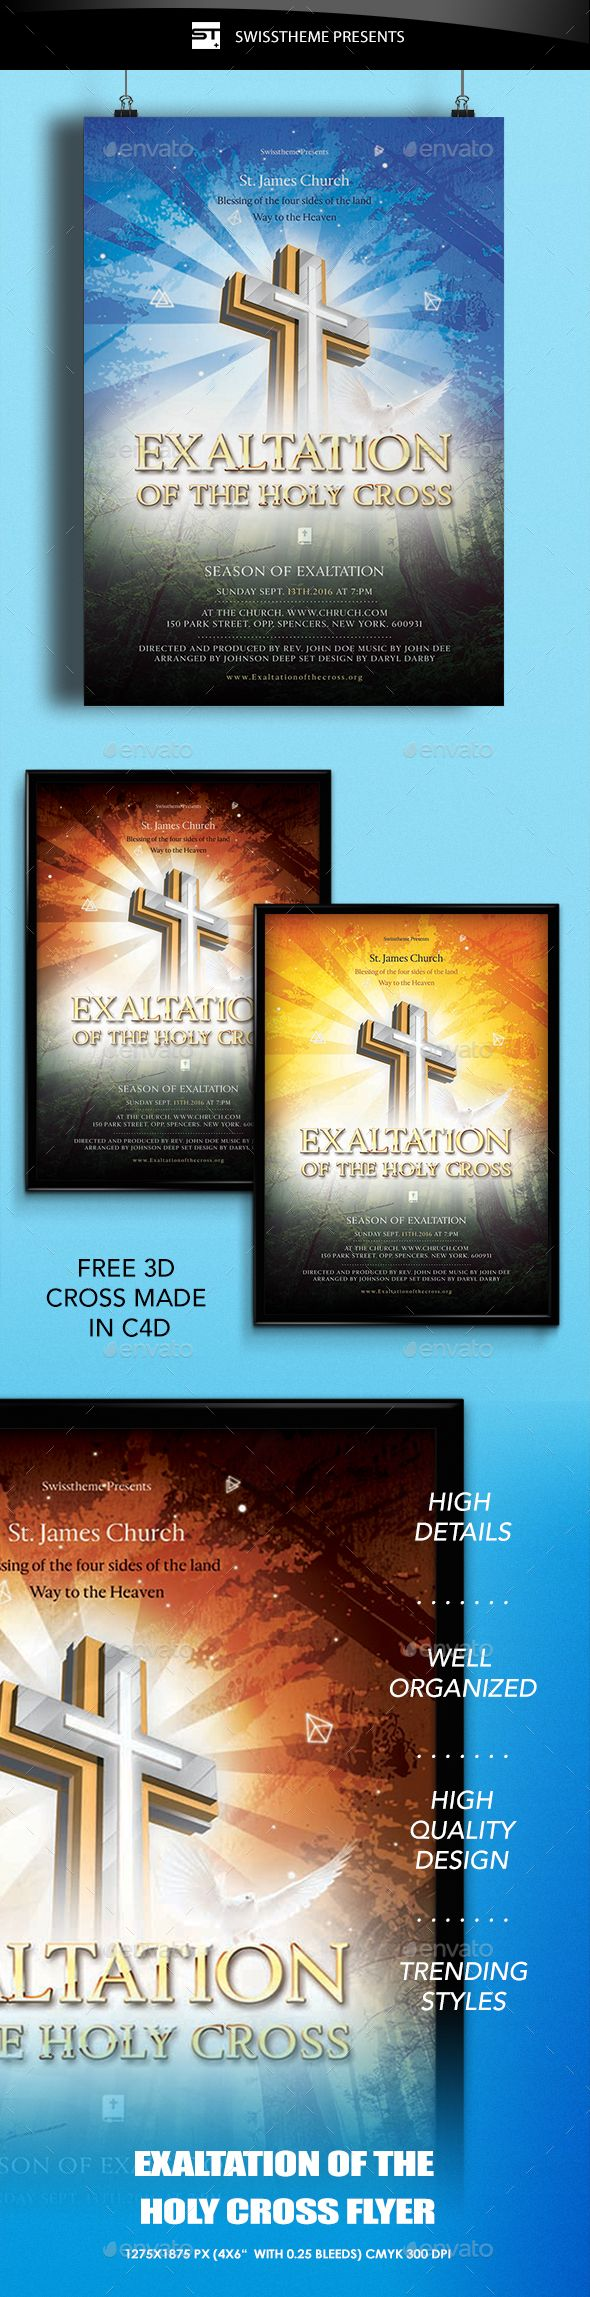 Exaltation of the Holy Cross Flyer